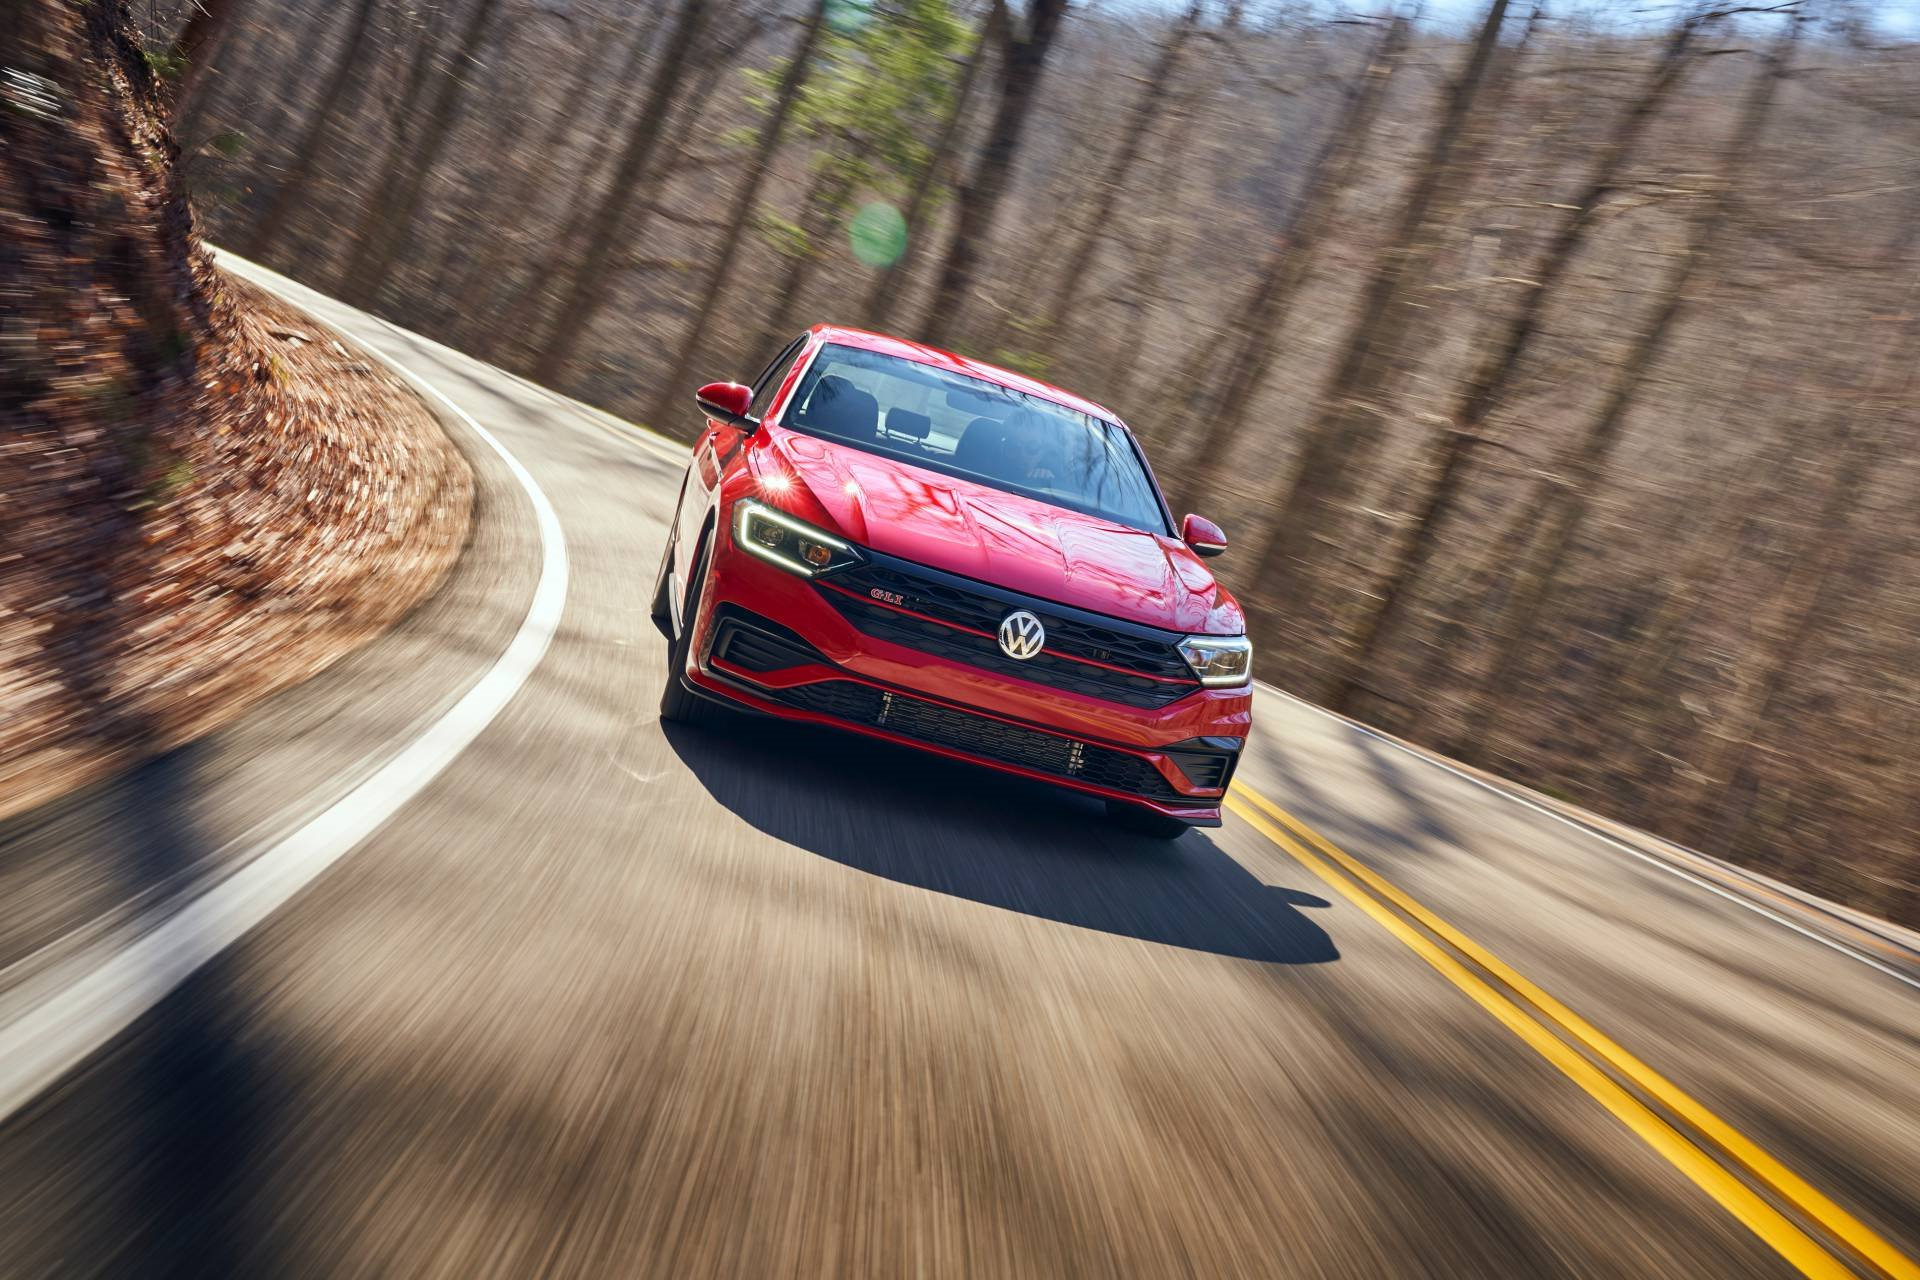 New 2019 Volkswagen-Jetta 1.4T SEL Premium Jetta 1.4T SEL Premium for sale $27,195 at M and V Leasing in Brooklyn NY 11223 1